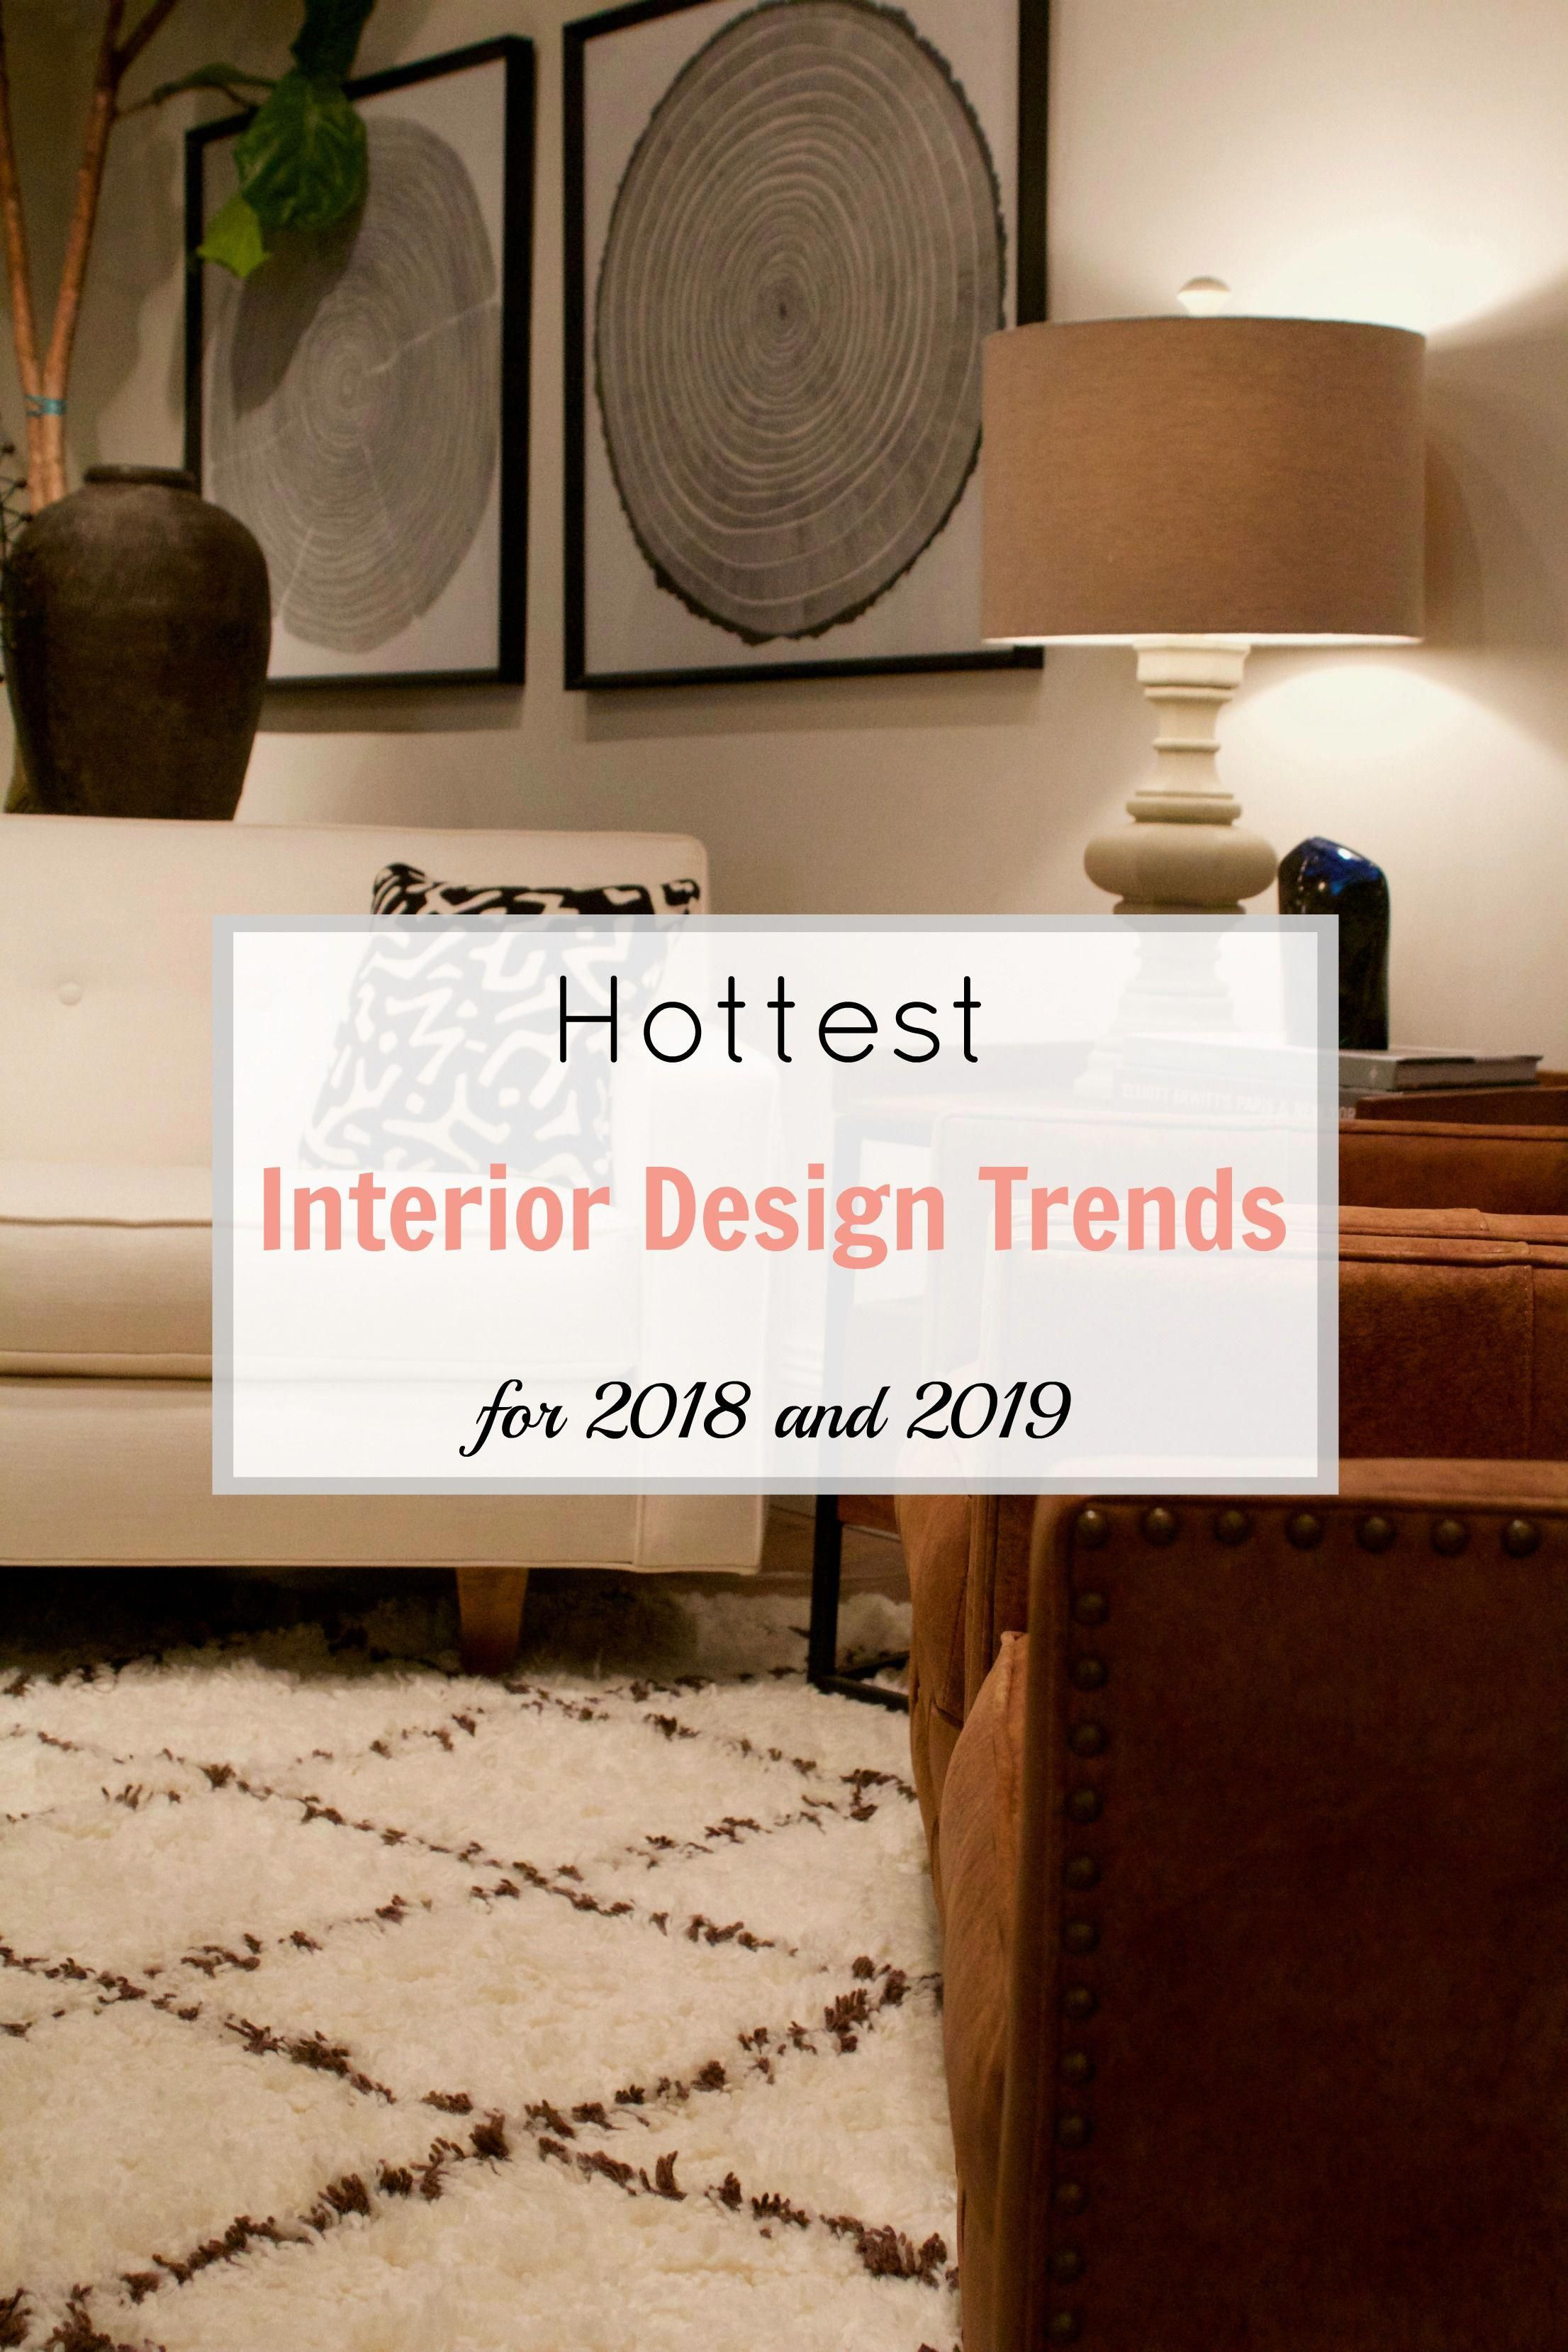 Home interior design business plan hottest interior design trends for  and   gates interior